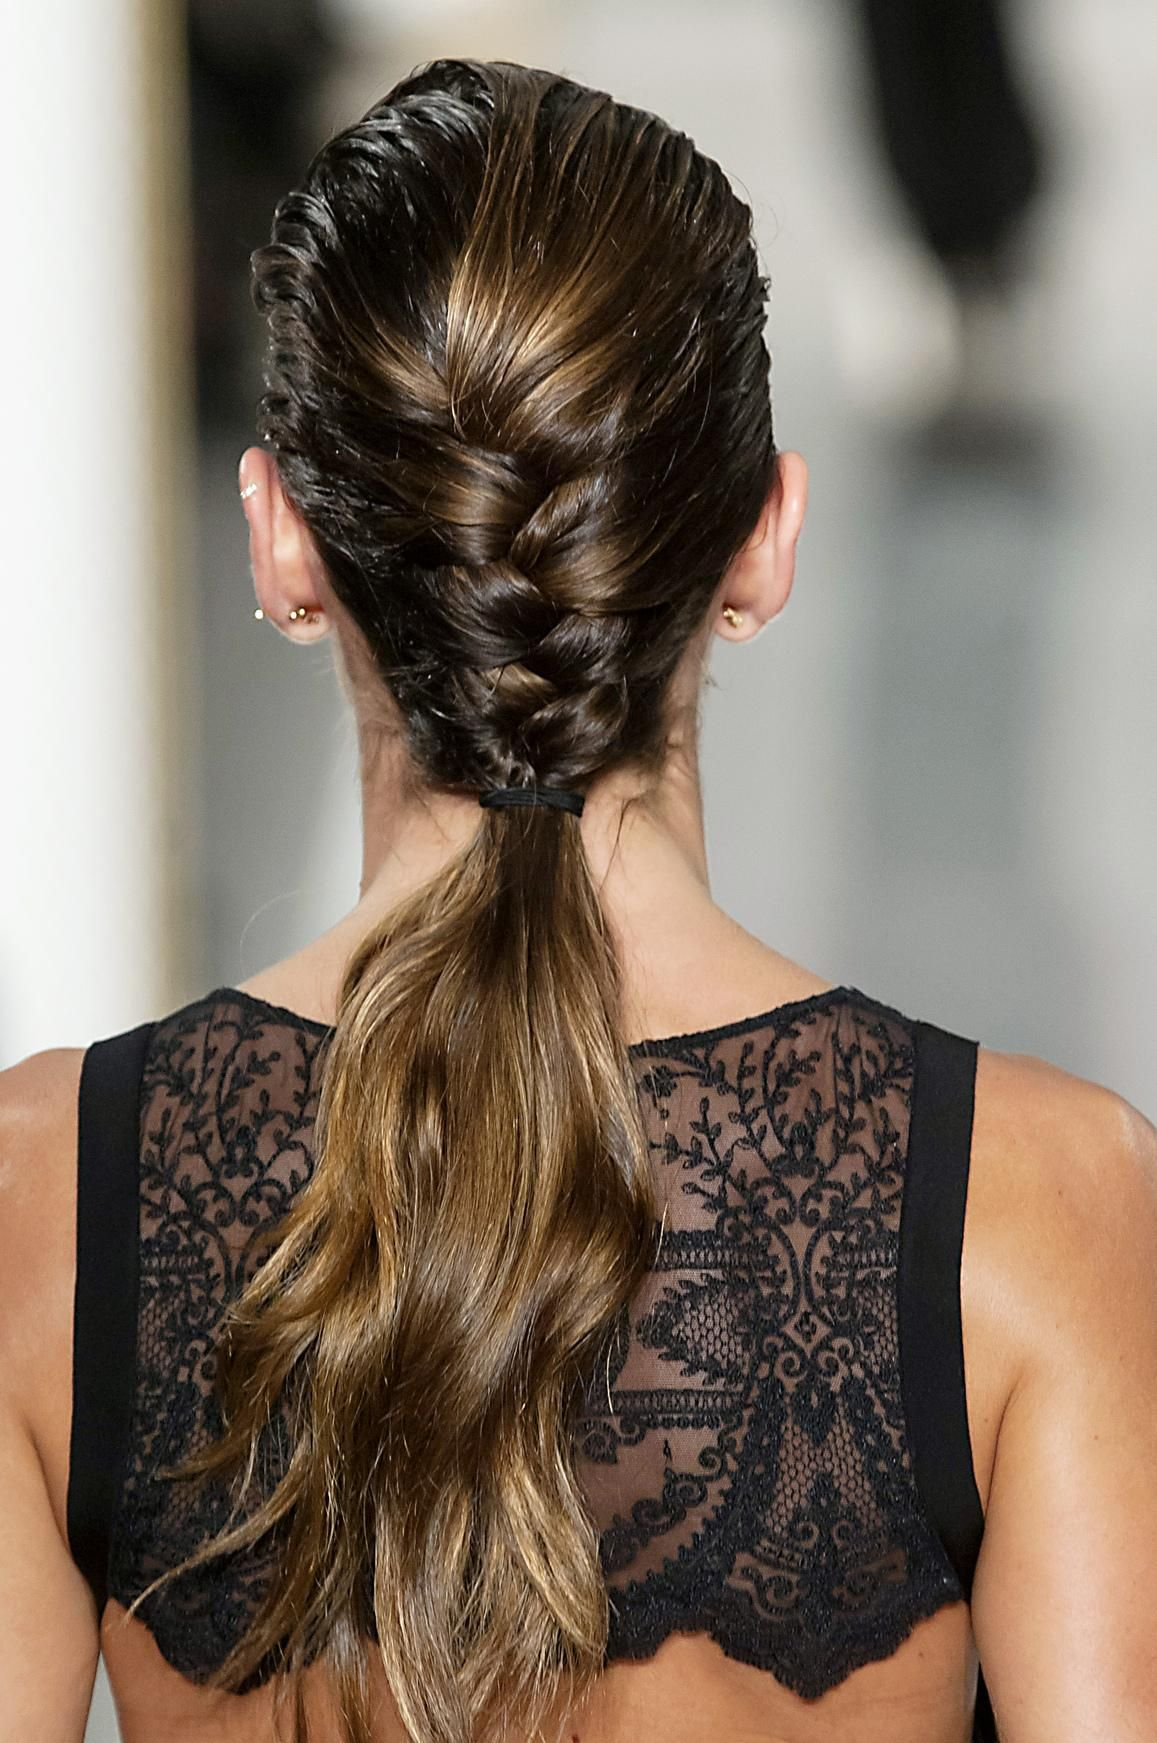 10 hairstyles to help hide outgrown roots | ponytail, ponytail